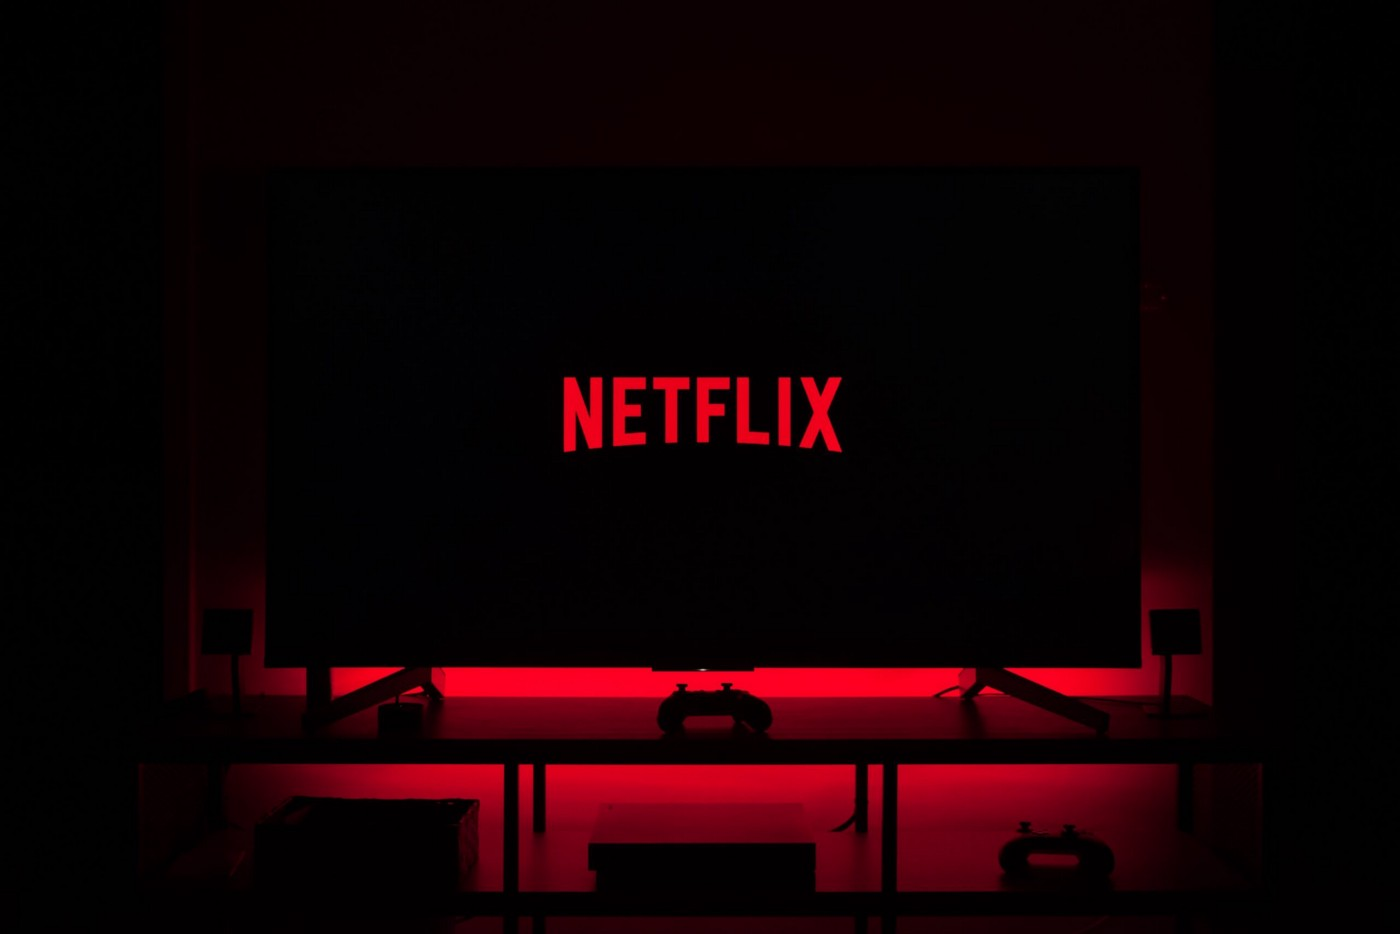 An image of the Netflix logo on a television screen in a dark room. The television is on top of a cabinet with a console gaming controller sitting in front of it. The red from the logo font resonates outward from the television giving a sort of ominous glow.